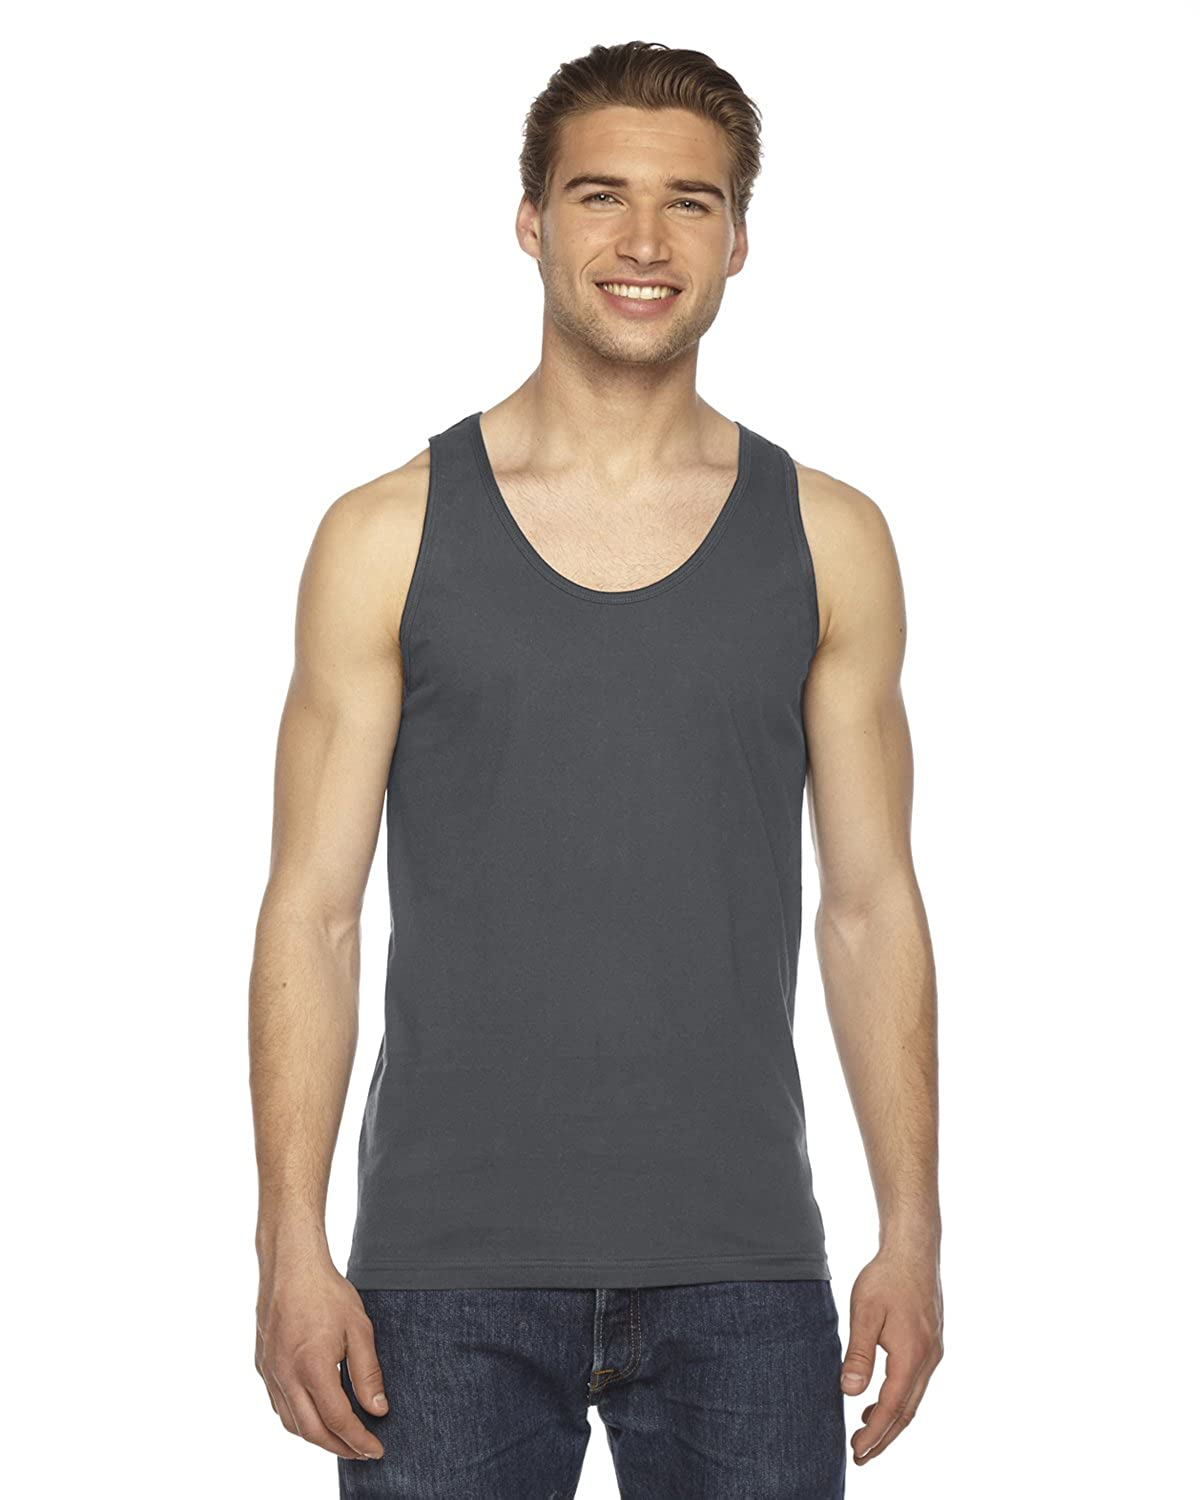 06c2705c8a American Apparel 2408 Men's Unisex Fine Jersey Tank at Amazon Men's Clothing  store: